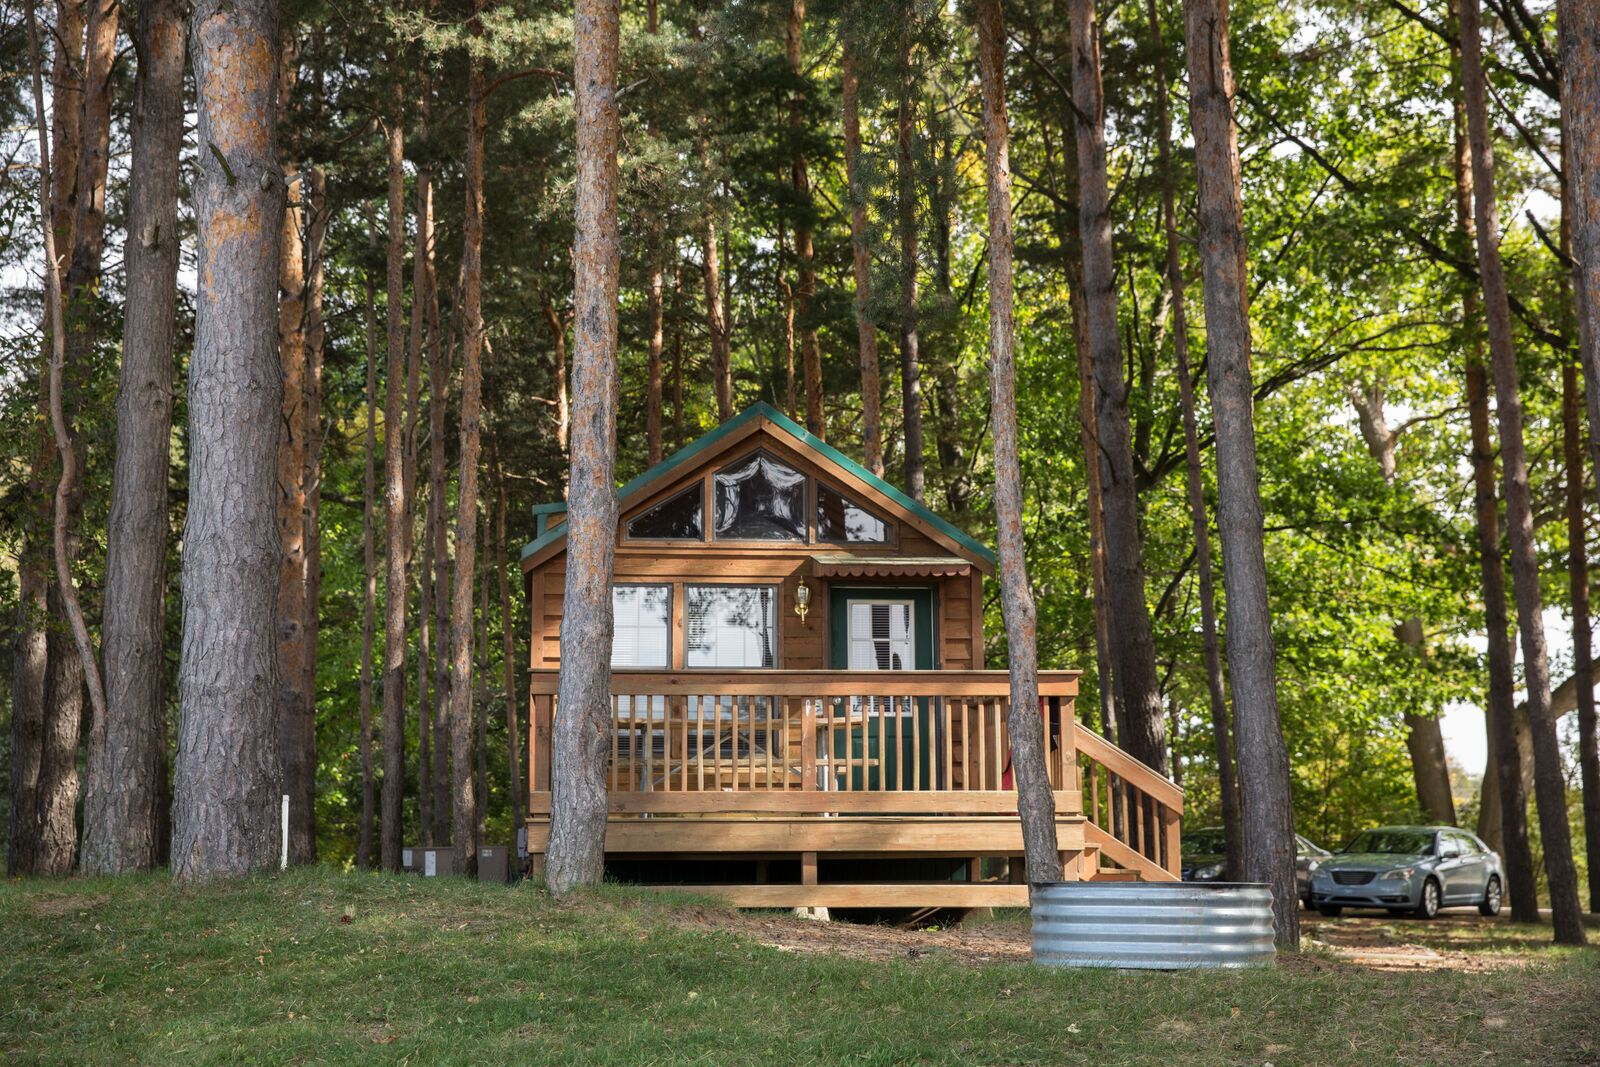 Lake Shore Resort Cabins Rv Parks Campgrounds